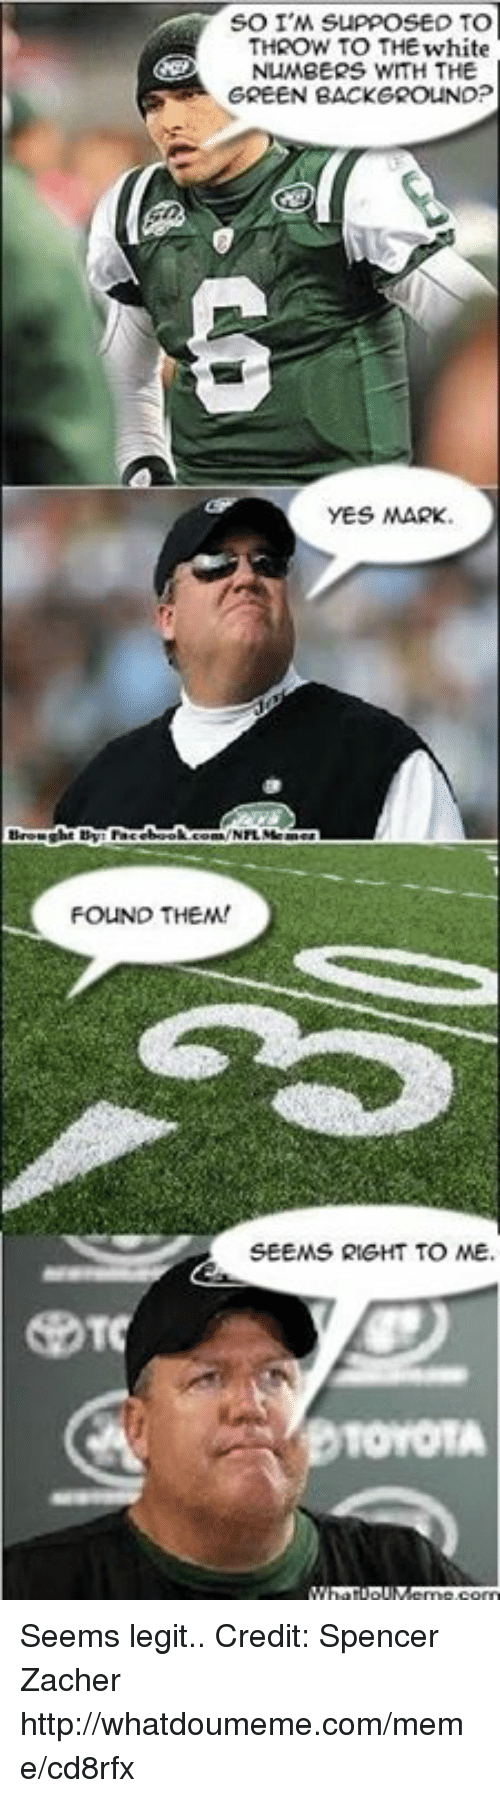 Meme, Nfl, and Toyota: SO I'M suppose TO  THROW TO THEwhite  NUMBERS WITH THE  GREEN BACKGROUND?  YES MARK.  FOUND THEM!  SEEMS RIGHT TO ME.  TOYOTA Seems legit.. Credit: Spencer Zacher  http://whatdoumeme.com/meme/cd8rfx